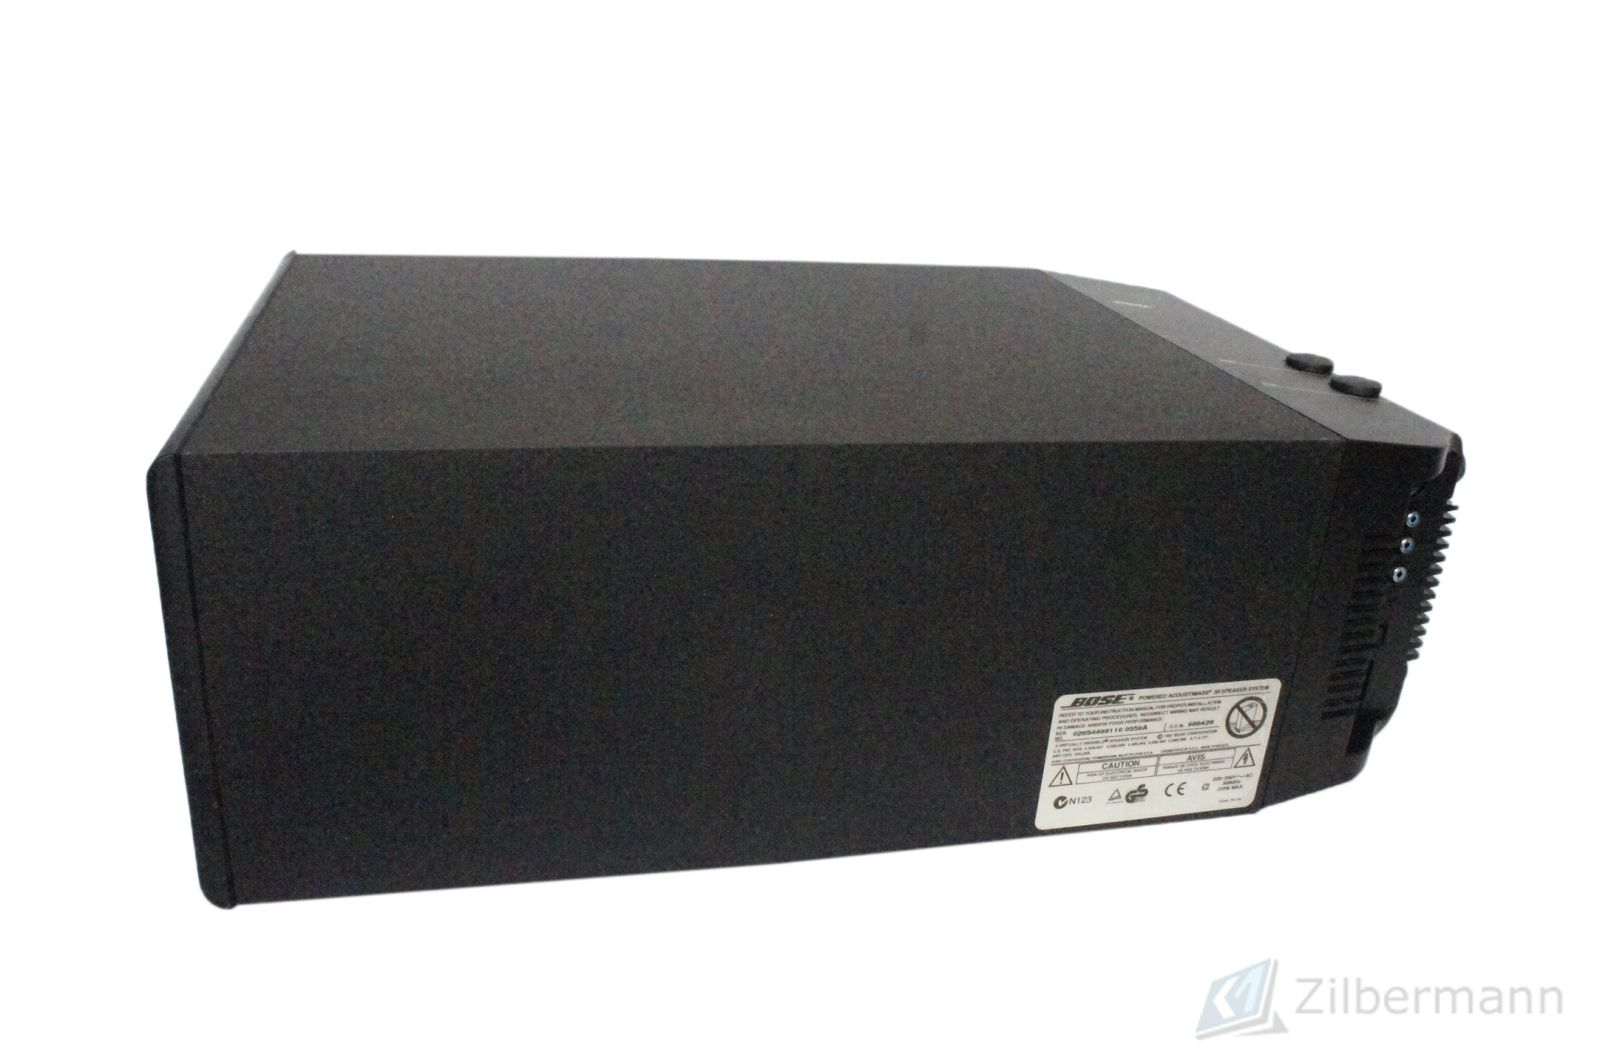 Bose_Acoustimass_30_Series_II_Powered_Subwoofer_06